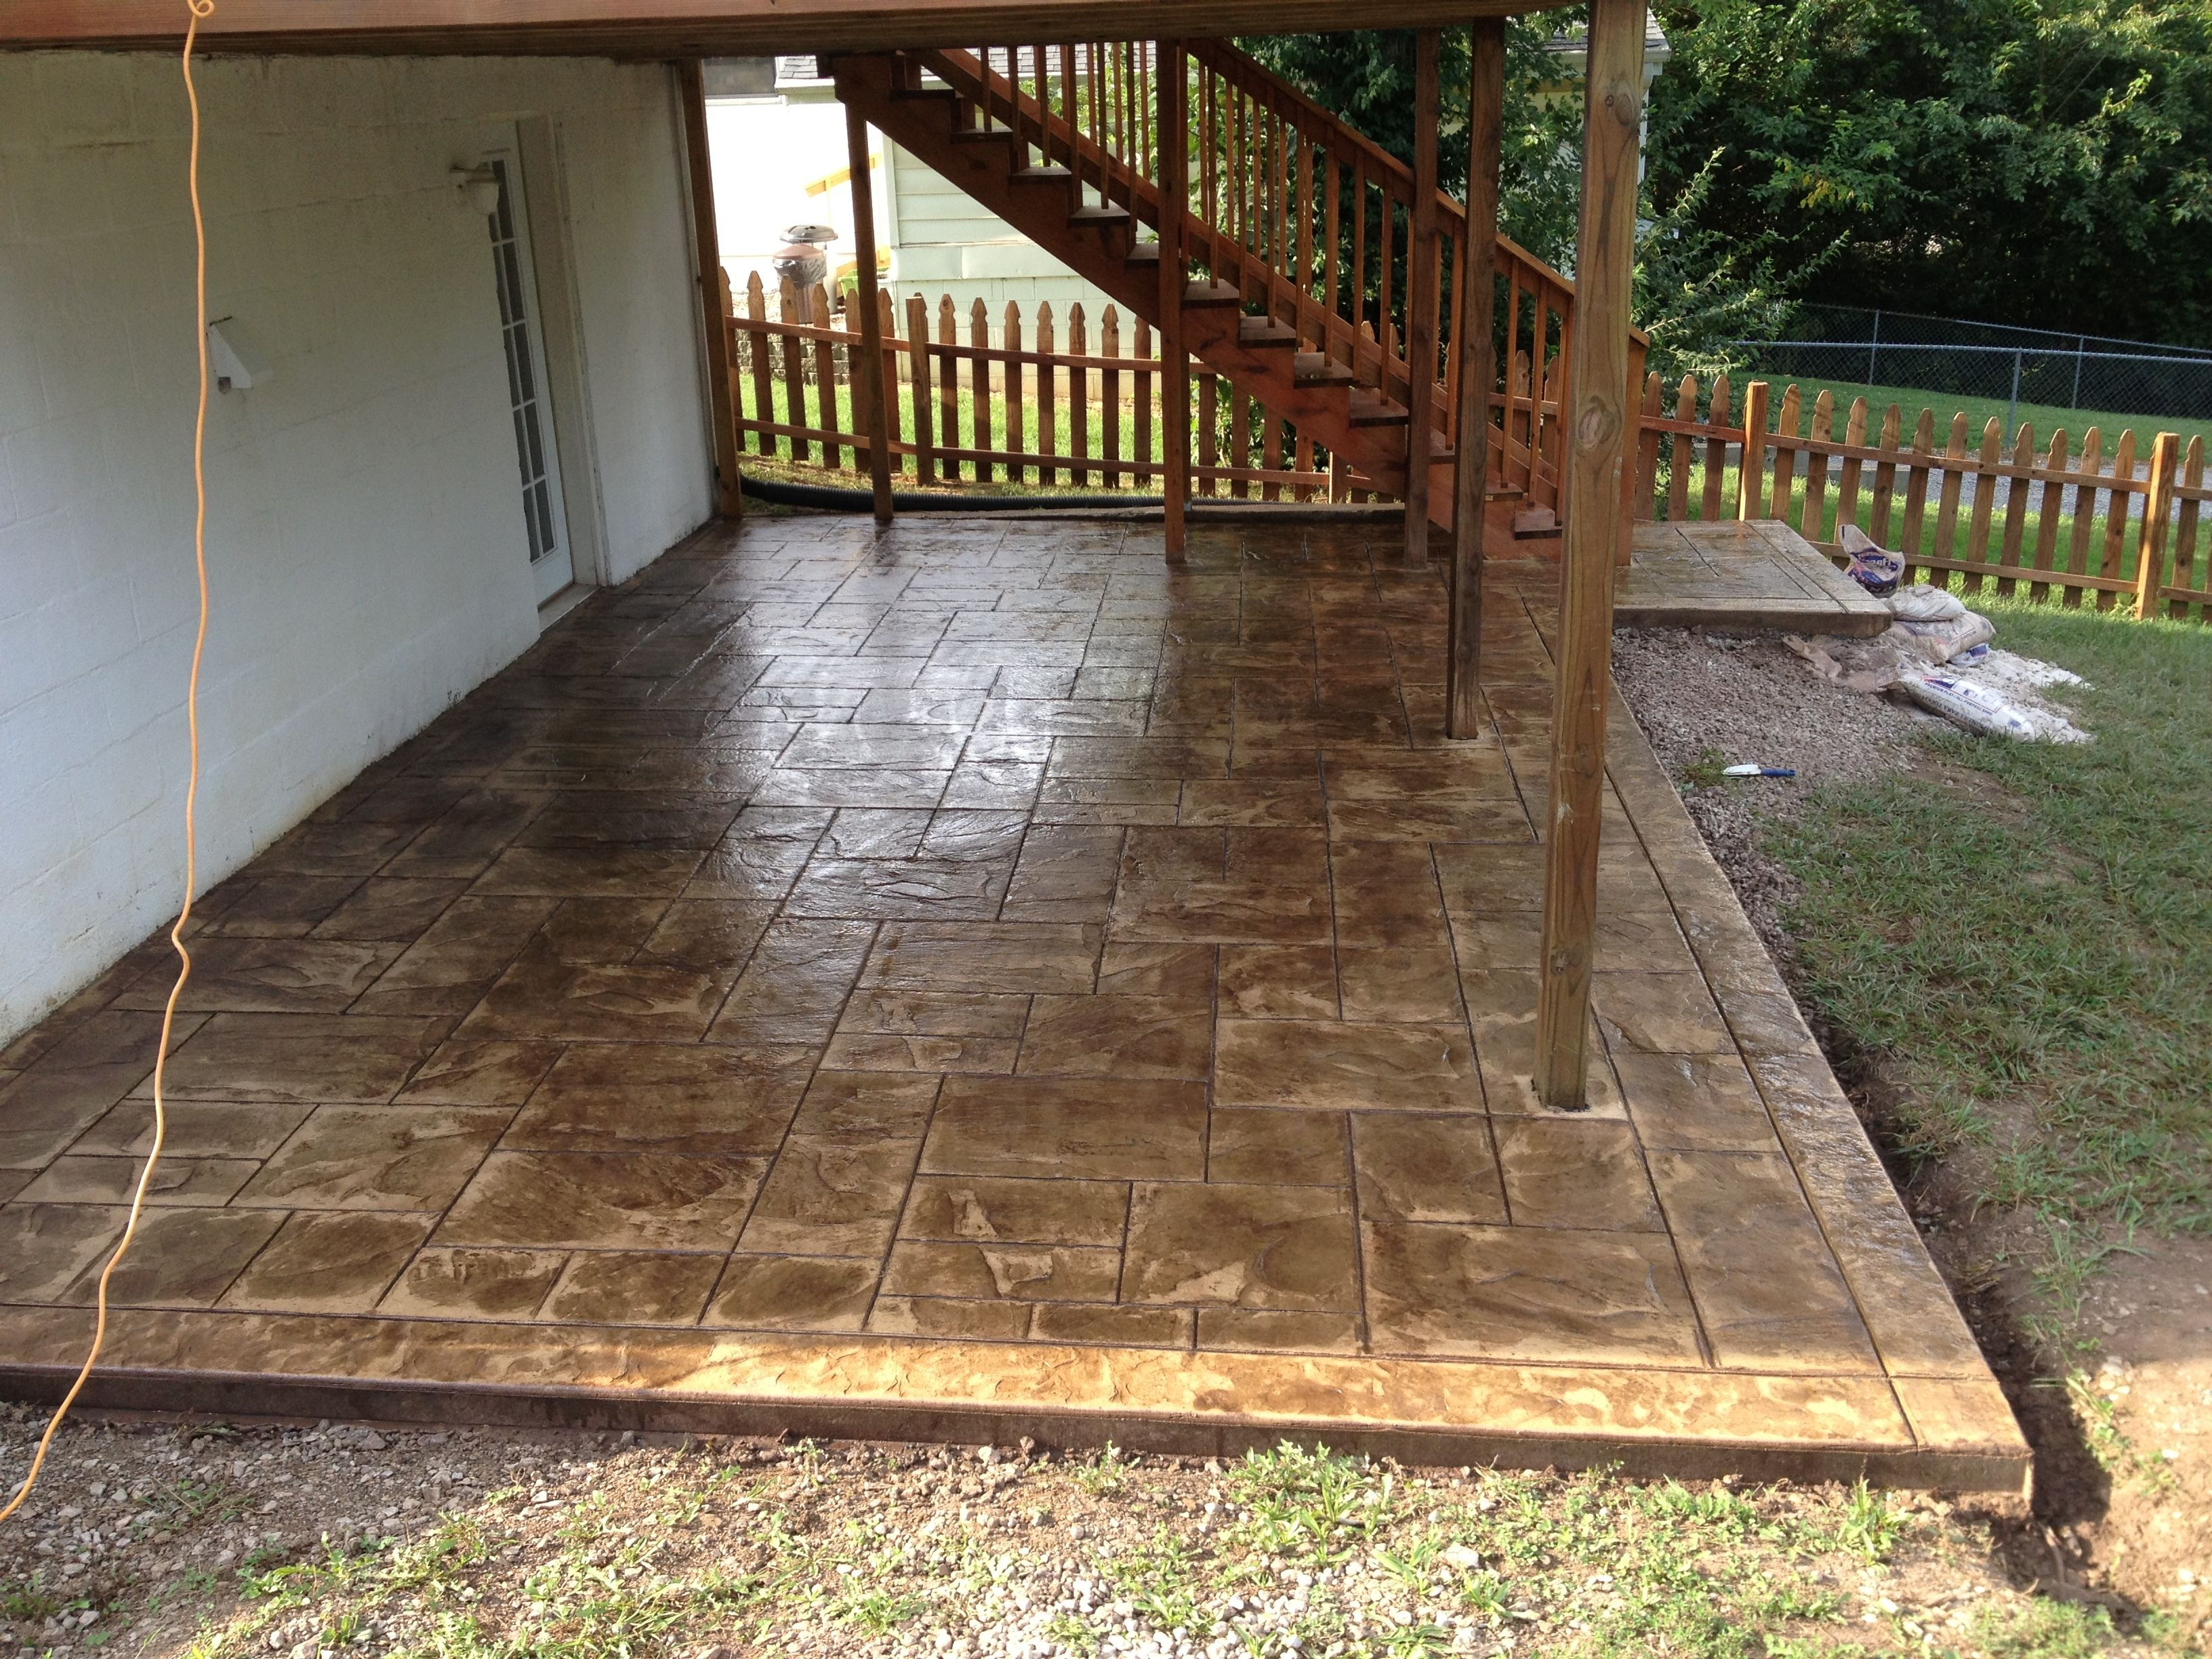 patio and deck designs ideas | patio ideas and patio design - Patio Ideas Under Deck